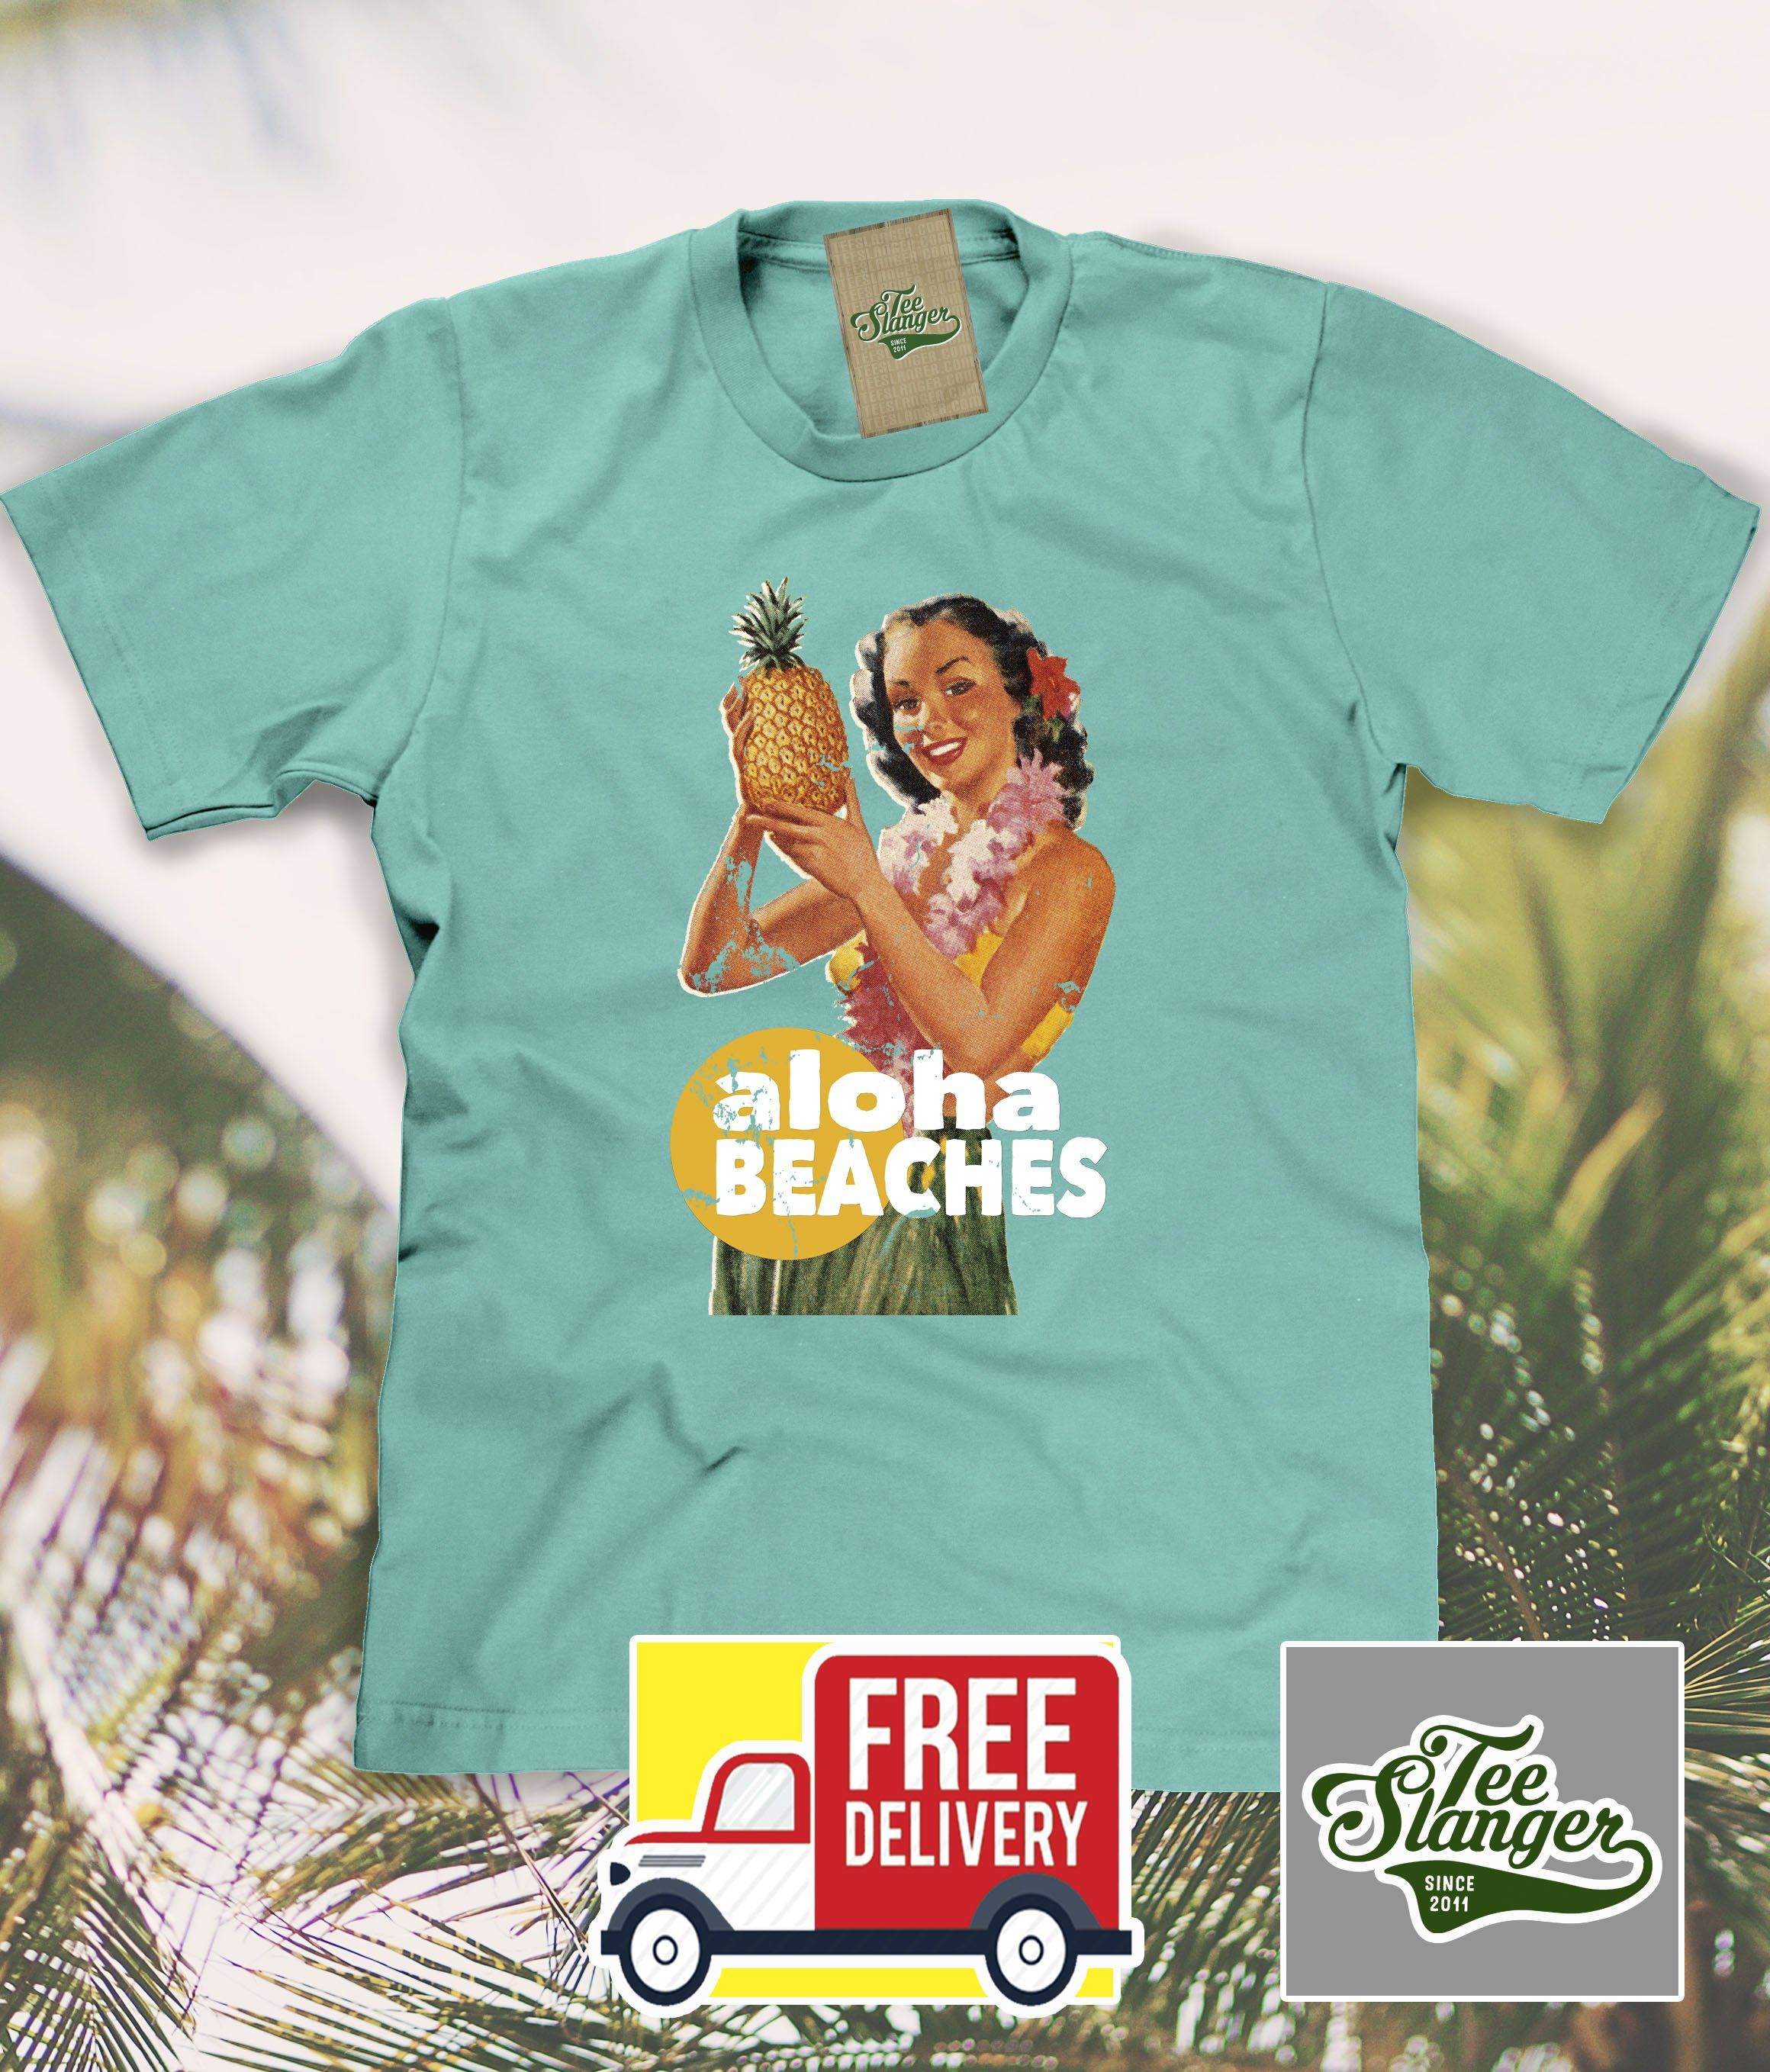 de04de77 Say Aloha Beaches and goodbye winter with this beachy Hawaii inspired tee  in mint green or heather grey. Available in unisex t-shirt or tank top.